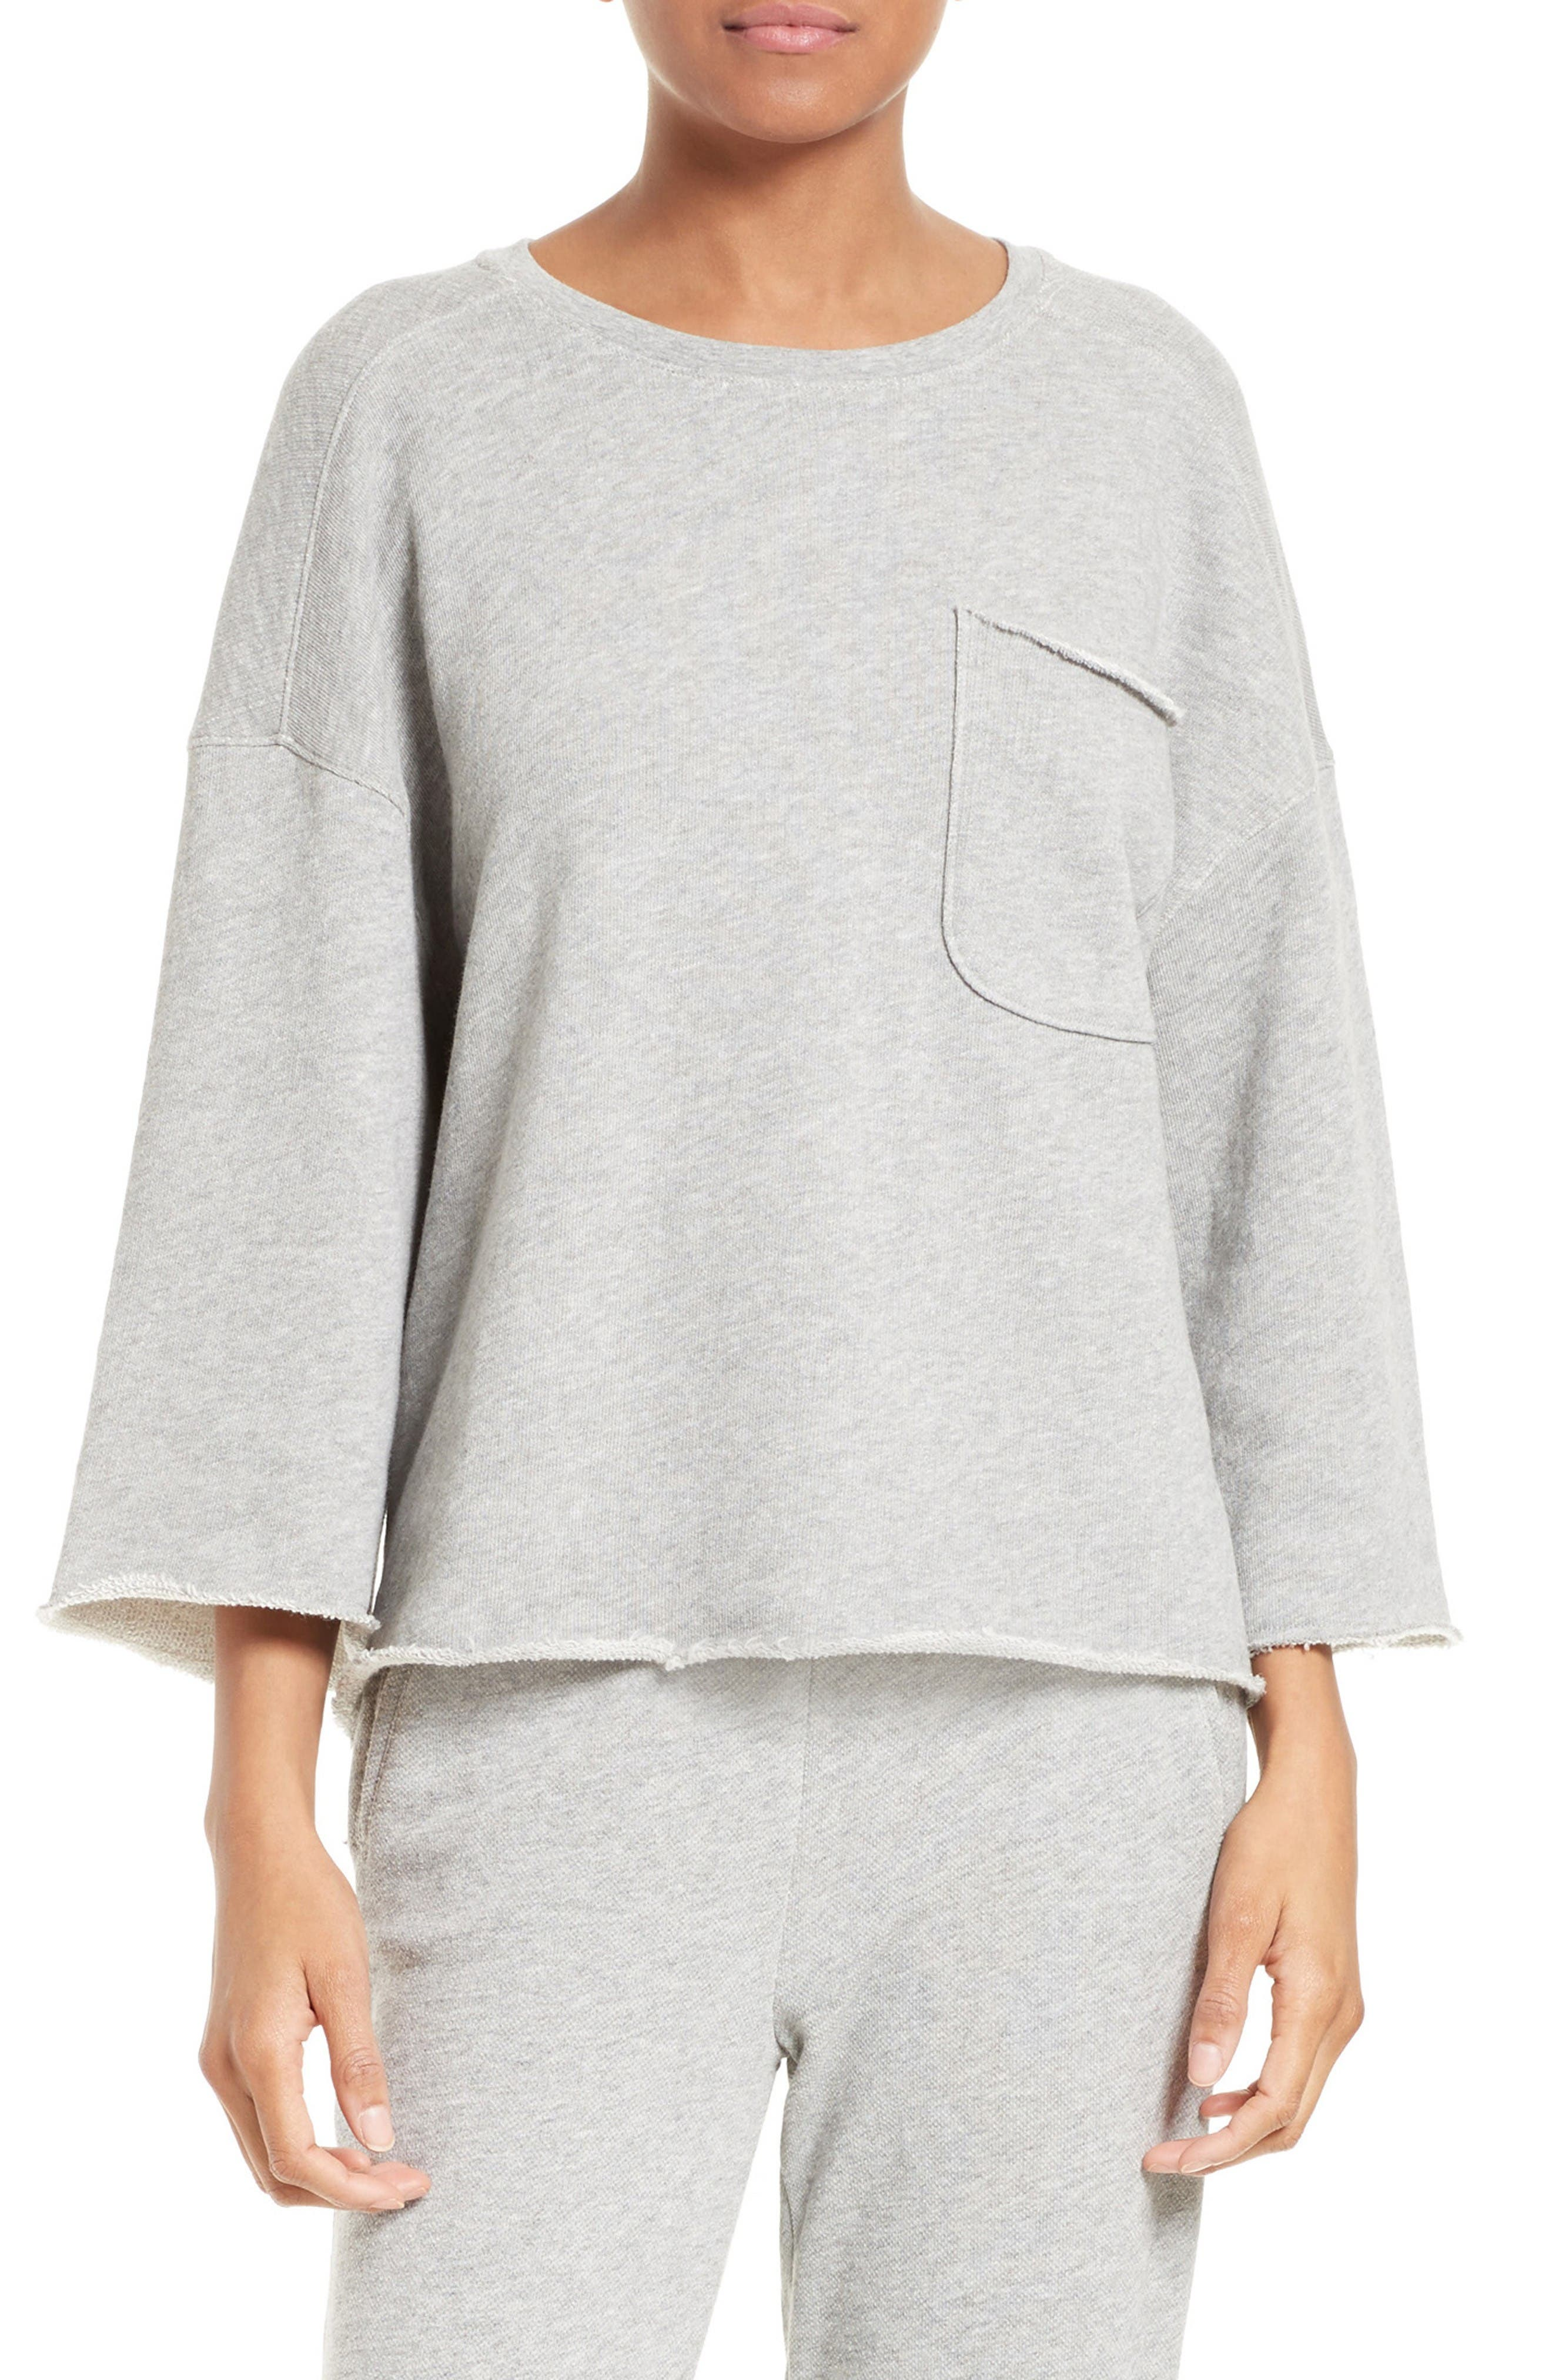 ATM Anthony Thomas Melillo Pocket Sweatshirt